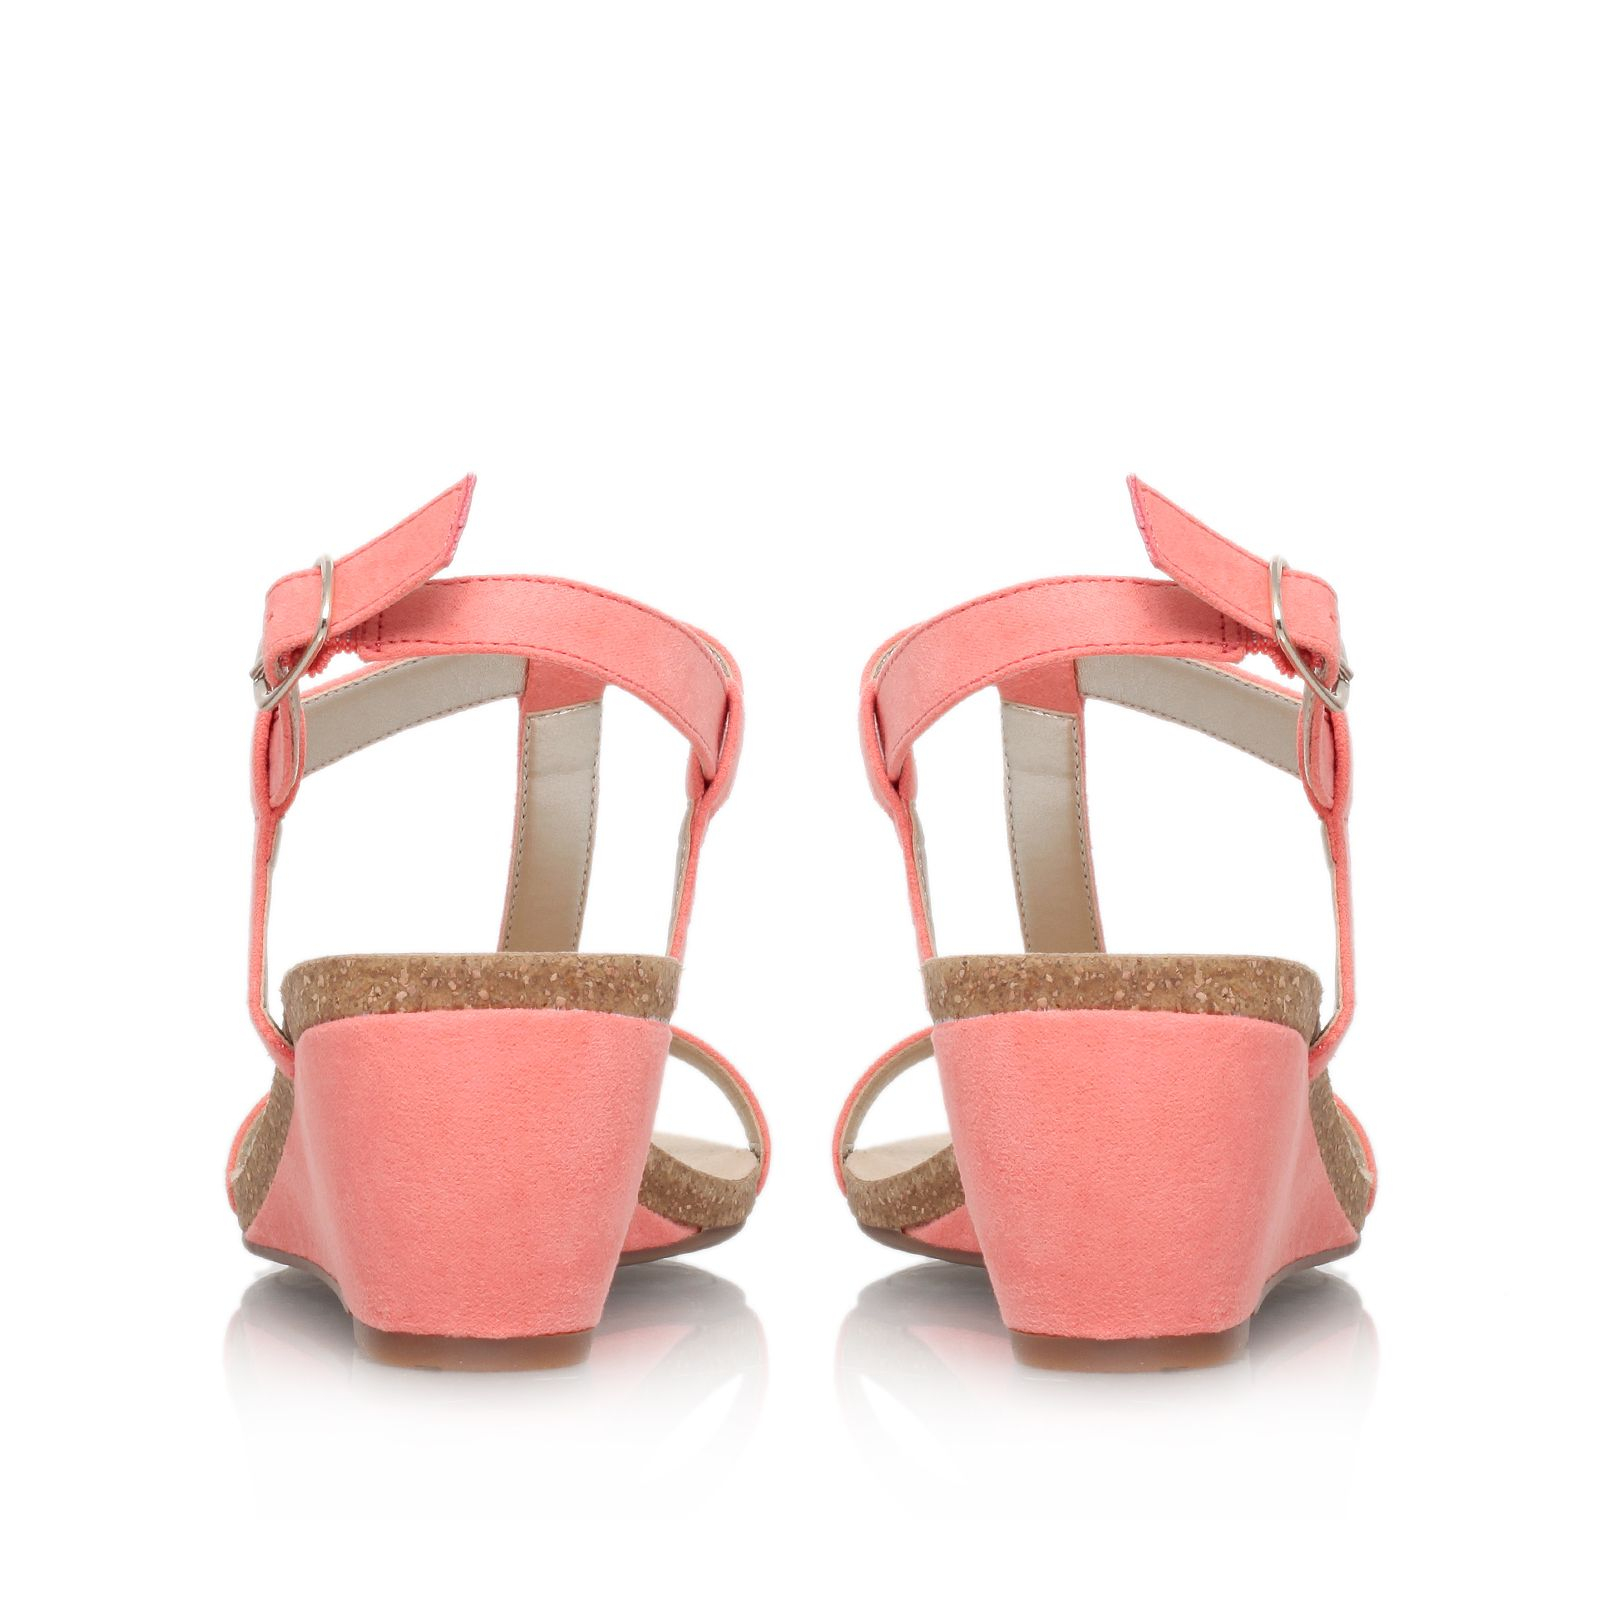 klein jovial2 low wedge heel sandals in pink lyst